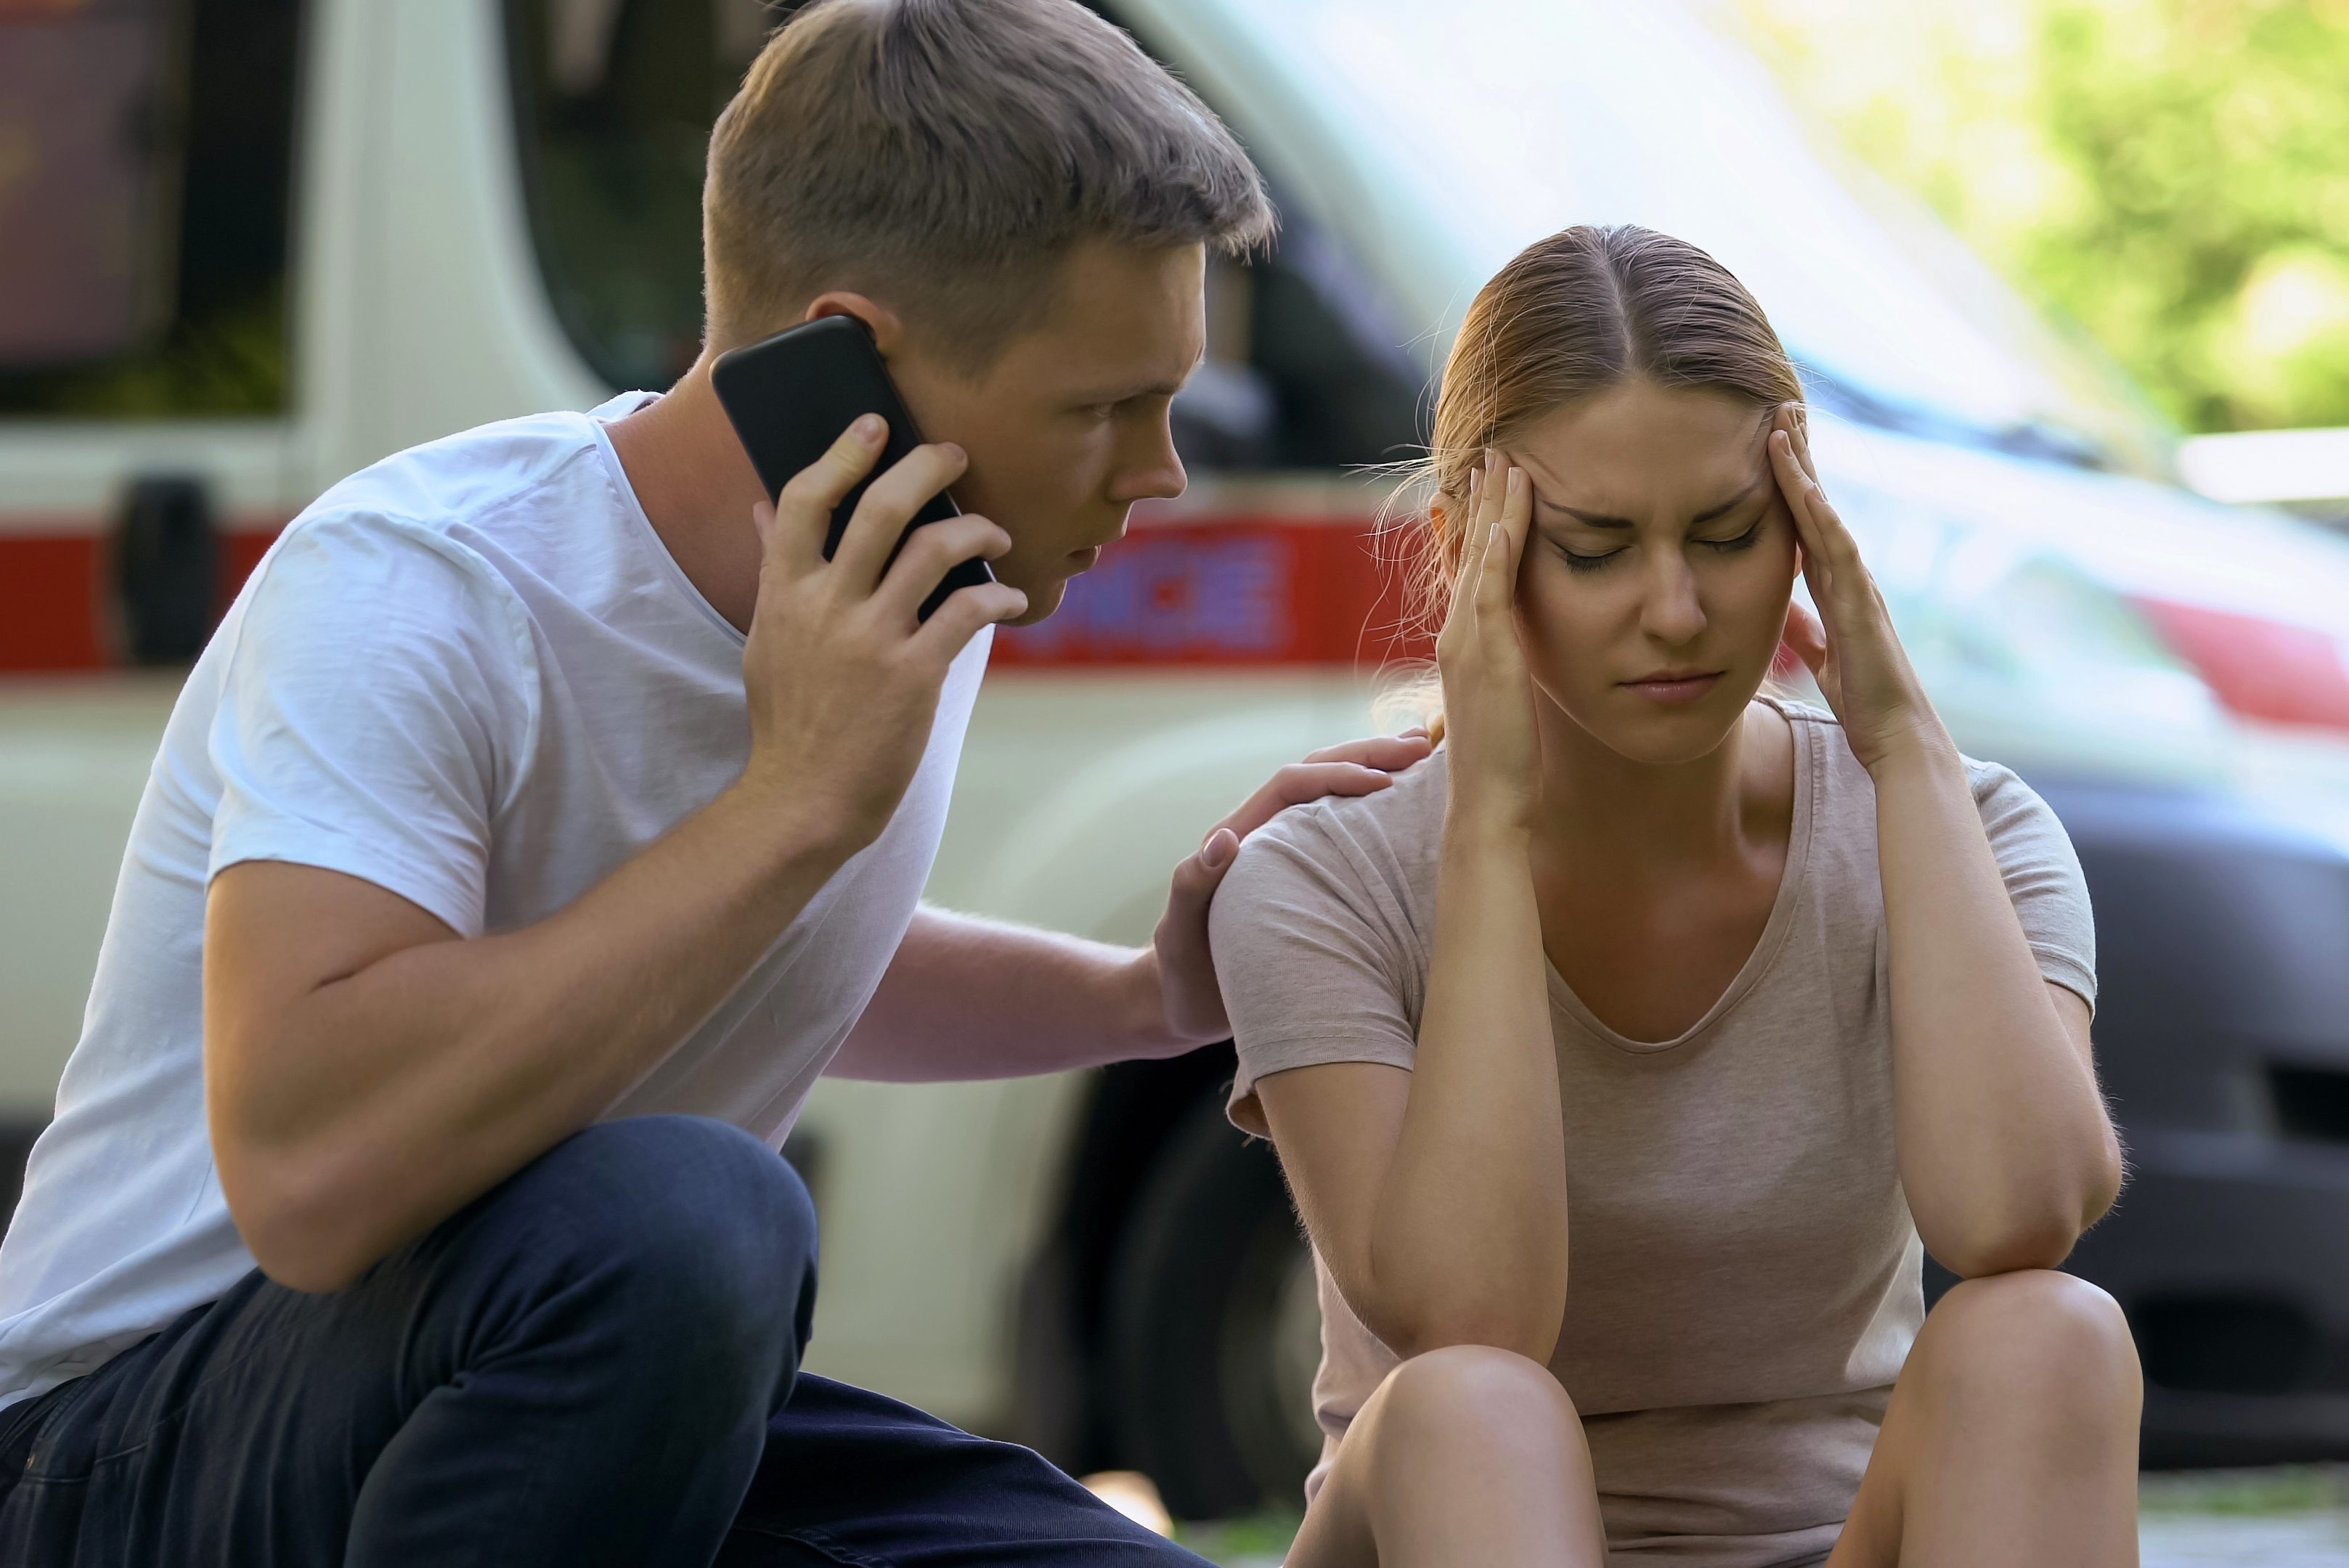 man calling an ambulance for woman in pain